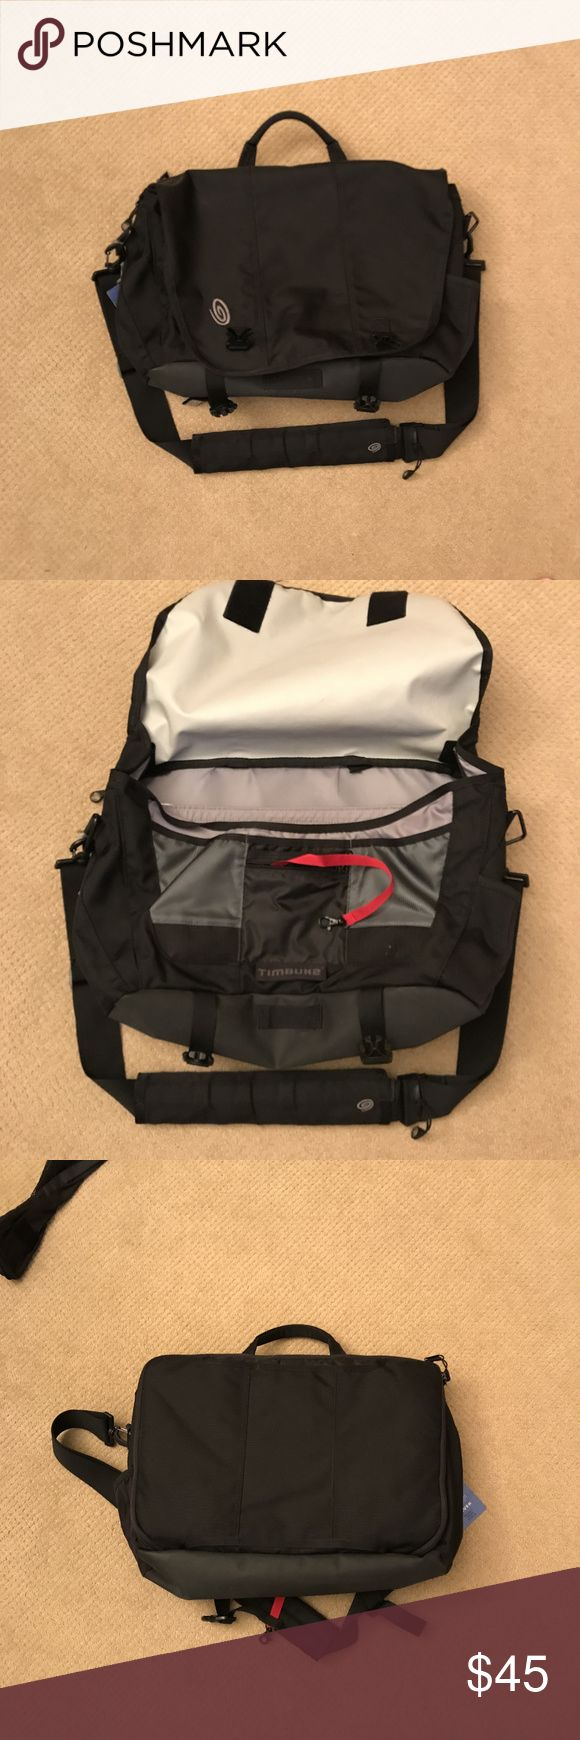 Timbuck2 Laptop Messenger Bag Large This item is in excellent condition with no rips, tears, or stains.  Comes from a smoke-free home. Timbuck2 Bags Messenger Bags